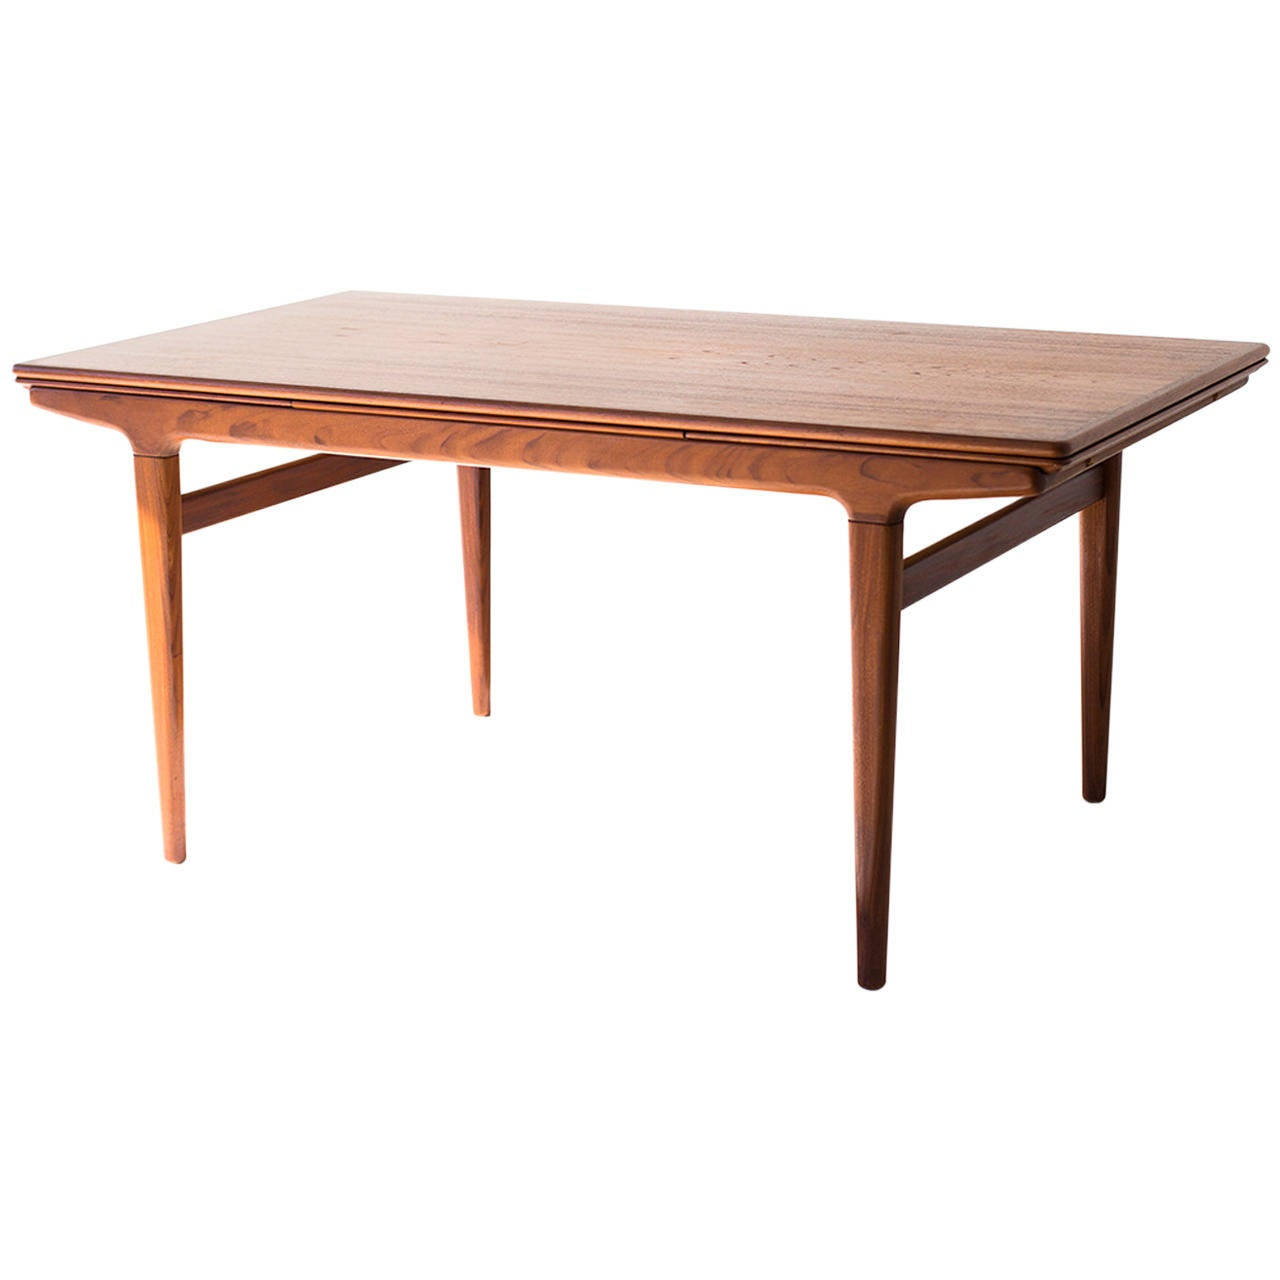 johannes andersen dining table for uldum m belfabrik at 1stdibs johannes andersen dining table for uldum m belfabrik 1